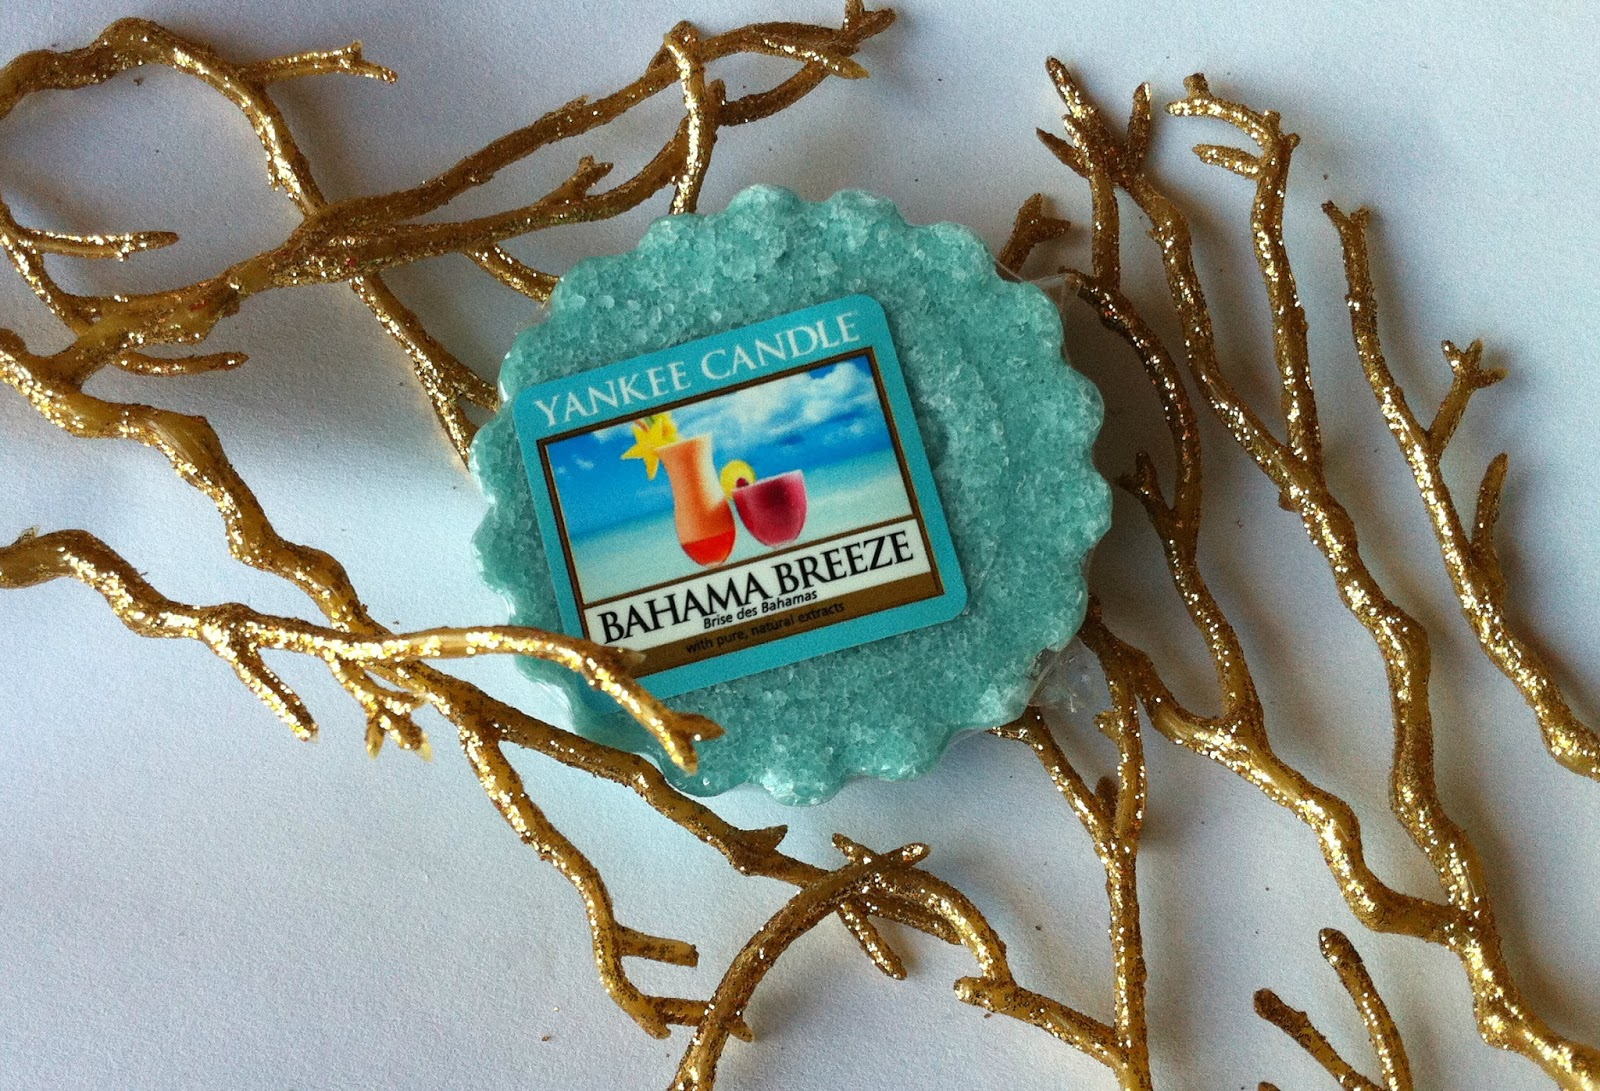 Bahama Breeze od Yankee Candle